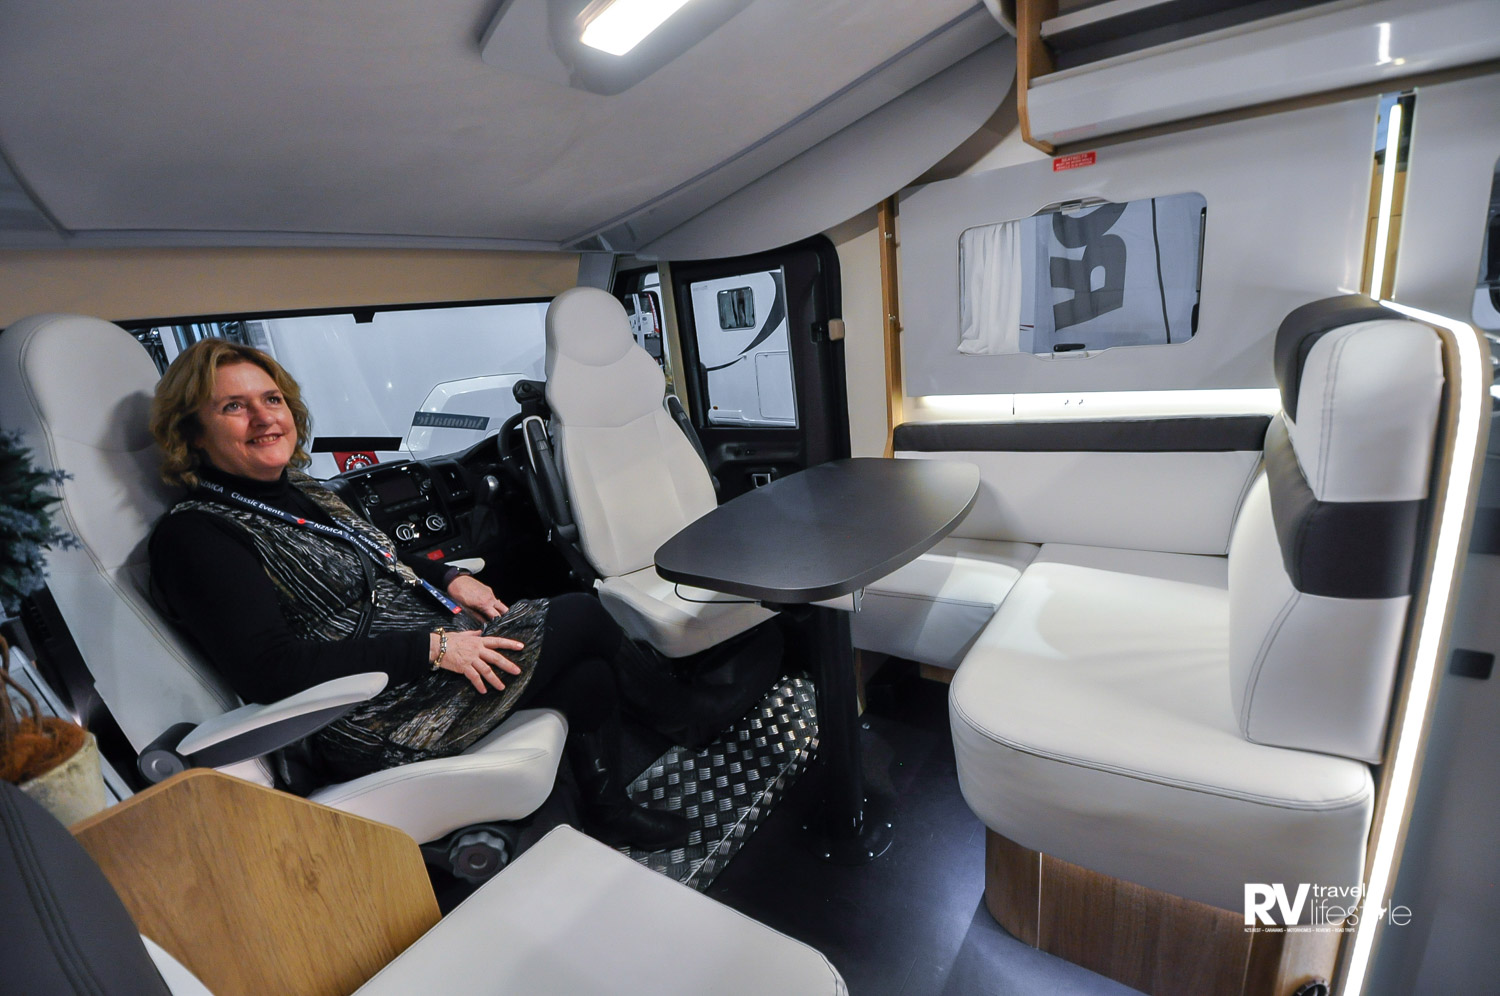 Comfy swivel cab seats add to the seating format in the entertainment area – note the ceiling bed above, very discrete